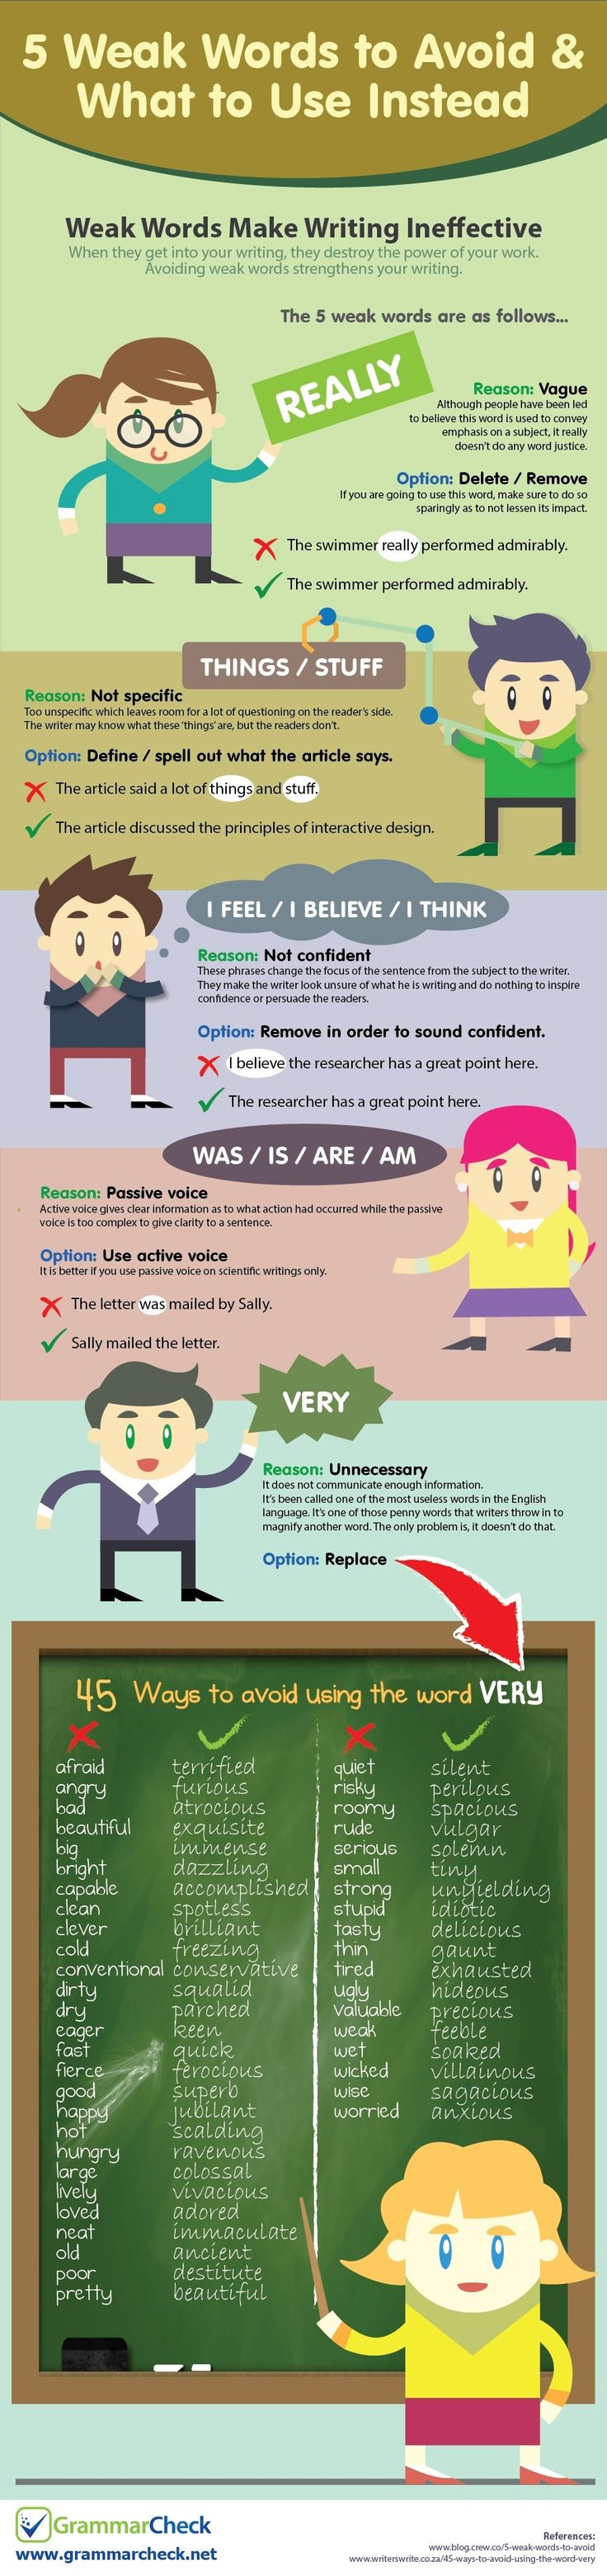 Infographic: These 5 words are making you a weaker writer